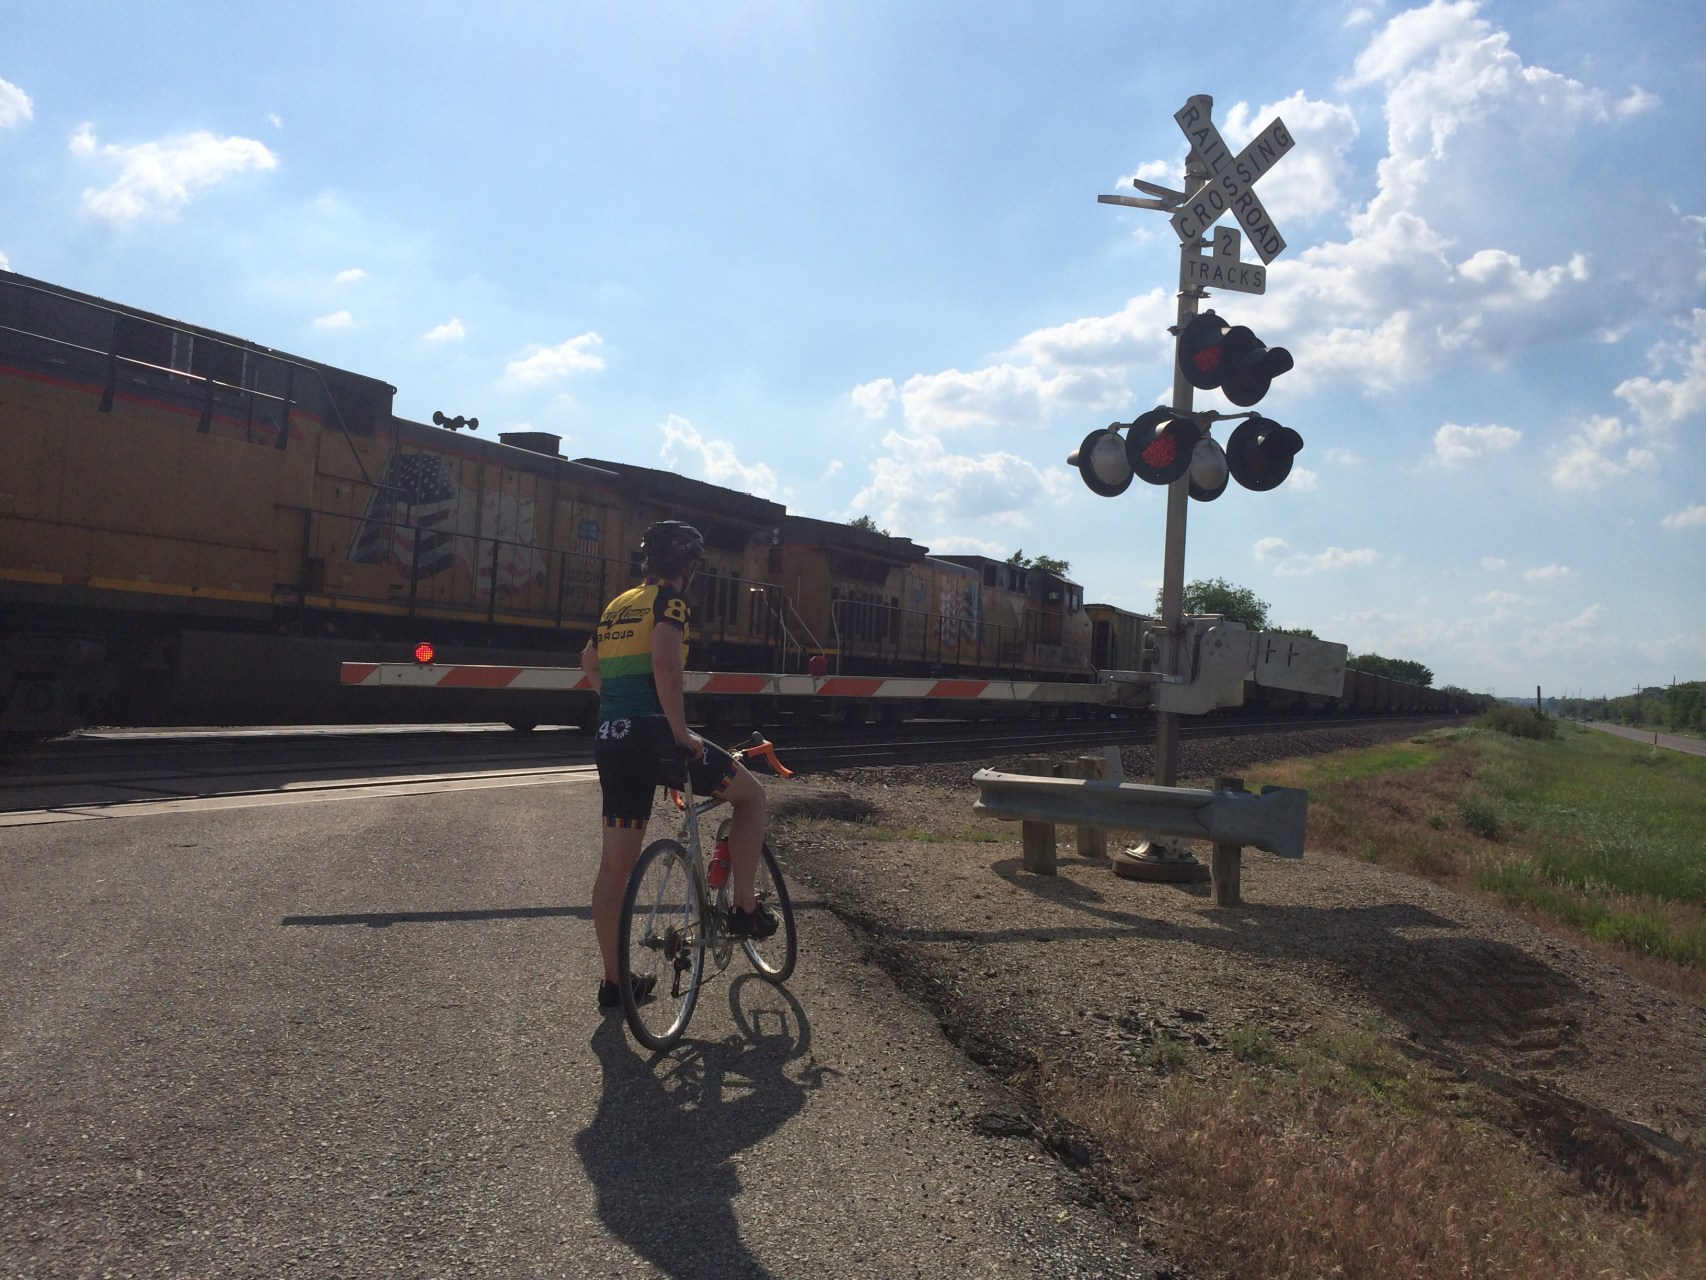 Shakedown ride encounters a long train. Long. Long. Long.